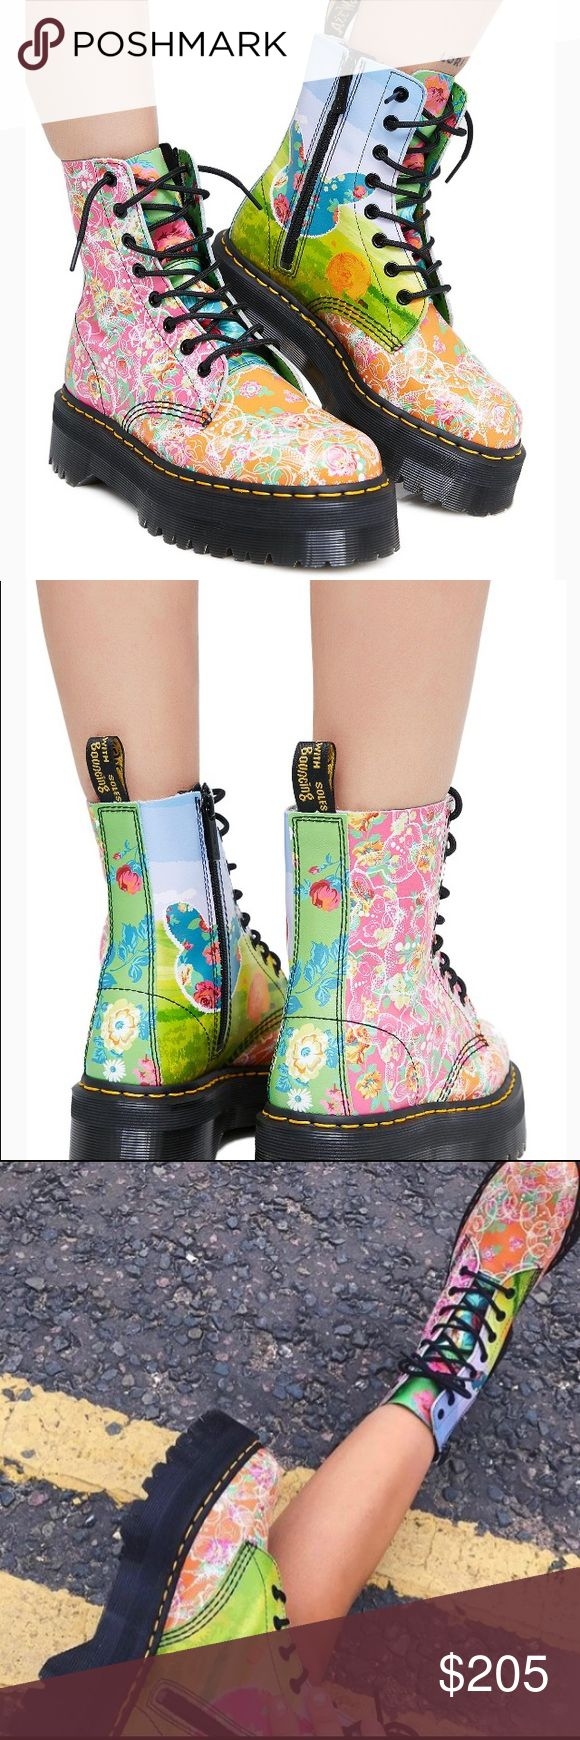 💕Doc Martin Women's Jadon Daze Fashion Boot. New The Jadon is a fierce evolution of the iconic Dr. Martens 8-eye boot, with a toughened-up, super-chunky platform sole. Combine that with an amped-up, neon floral print designed to channel the late 80s acid house movement, and you've got a serious statement boot. Dr. Martens Shoes Lace Up Boots